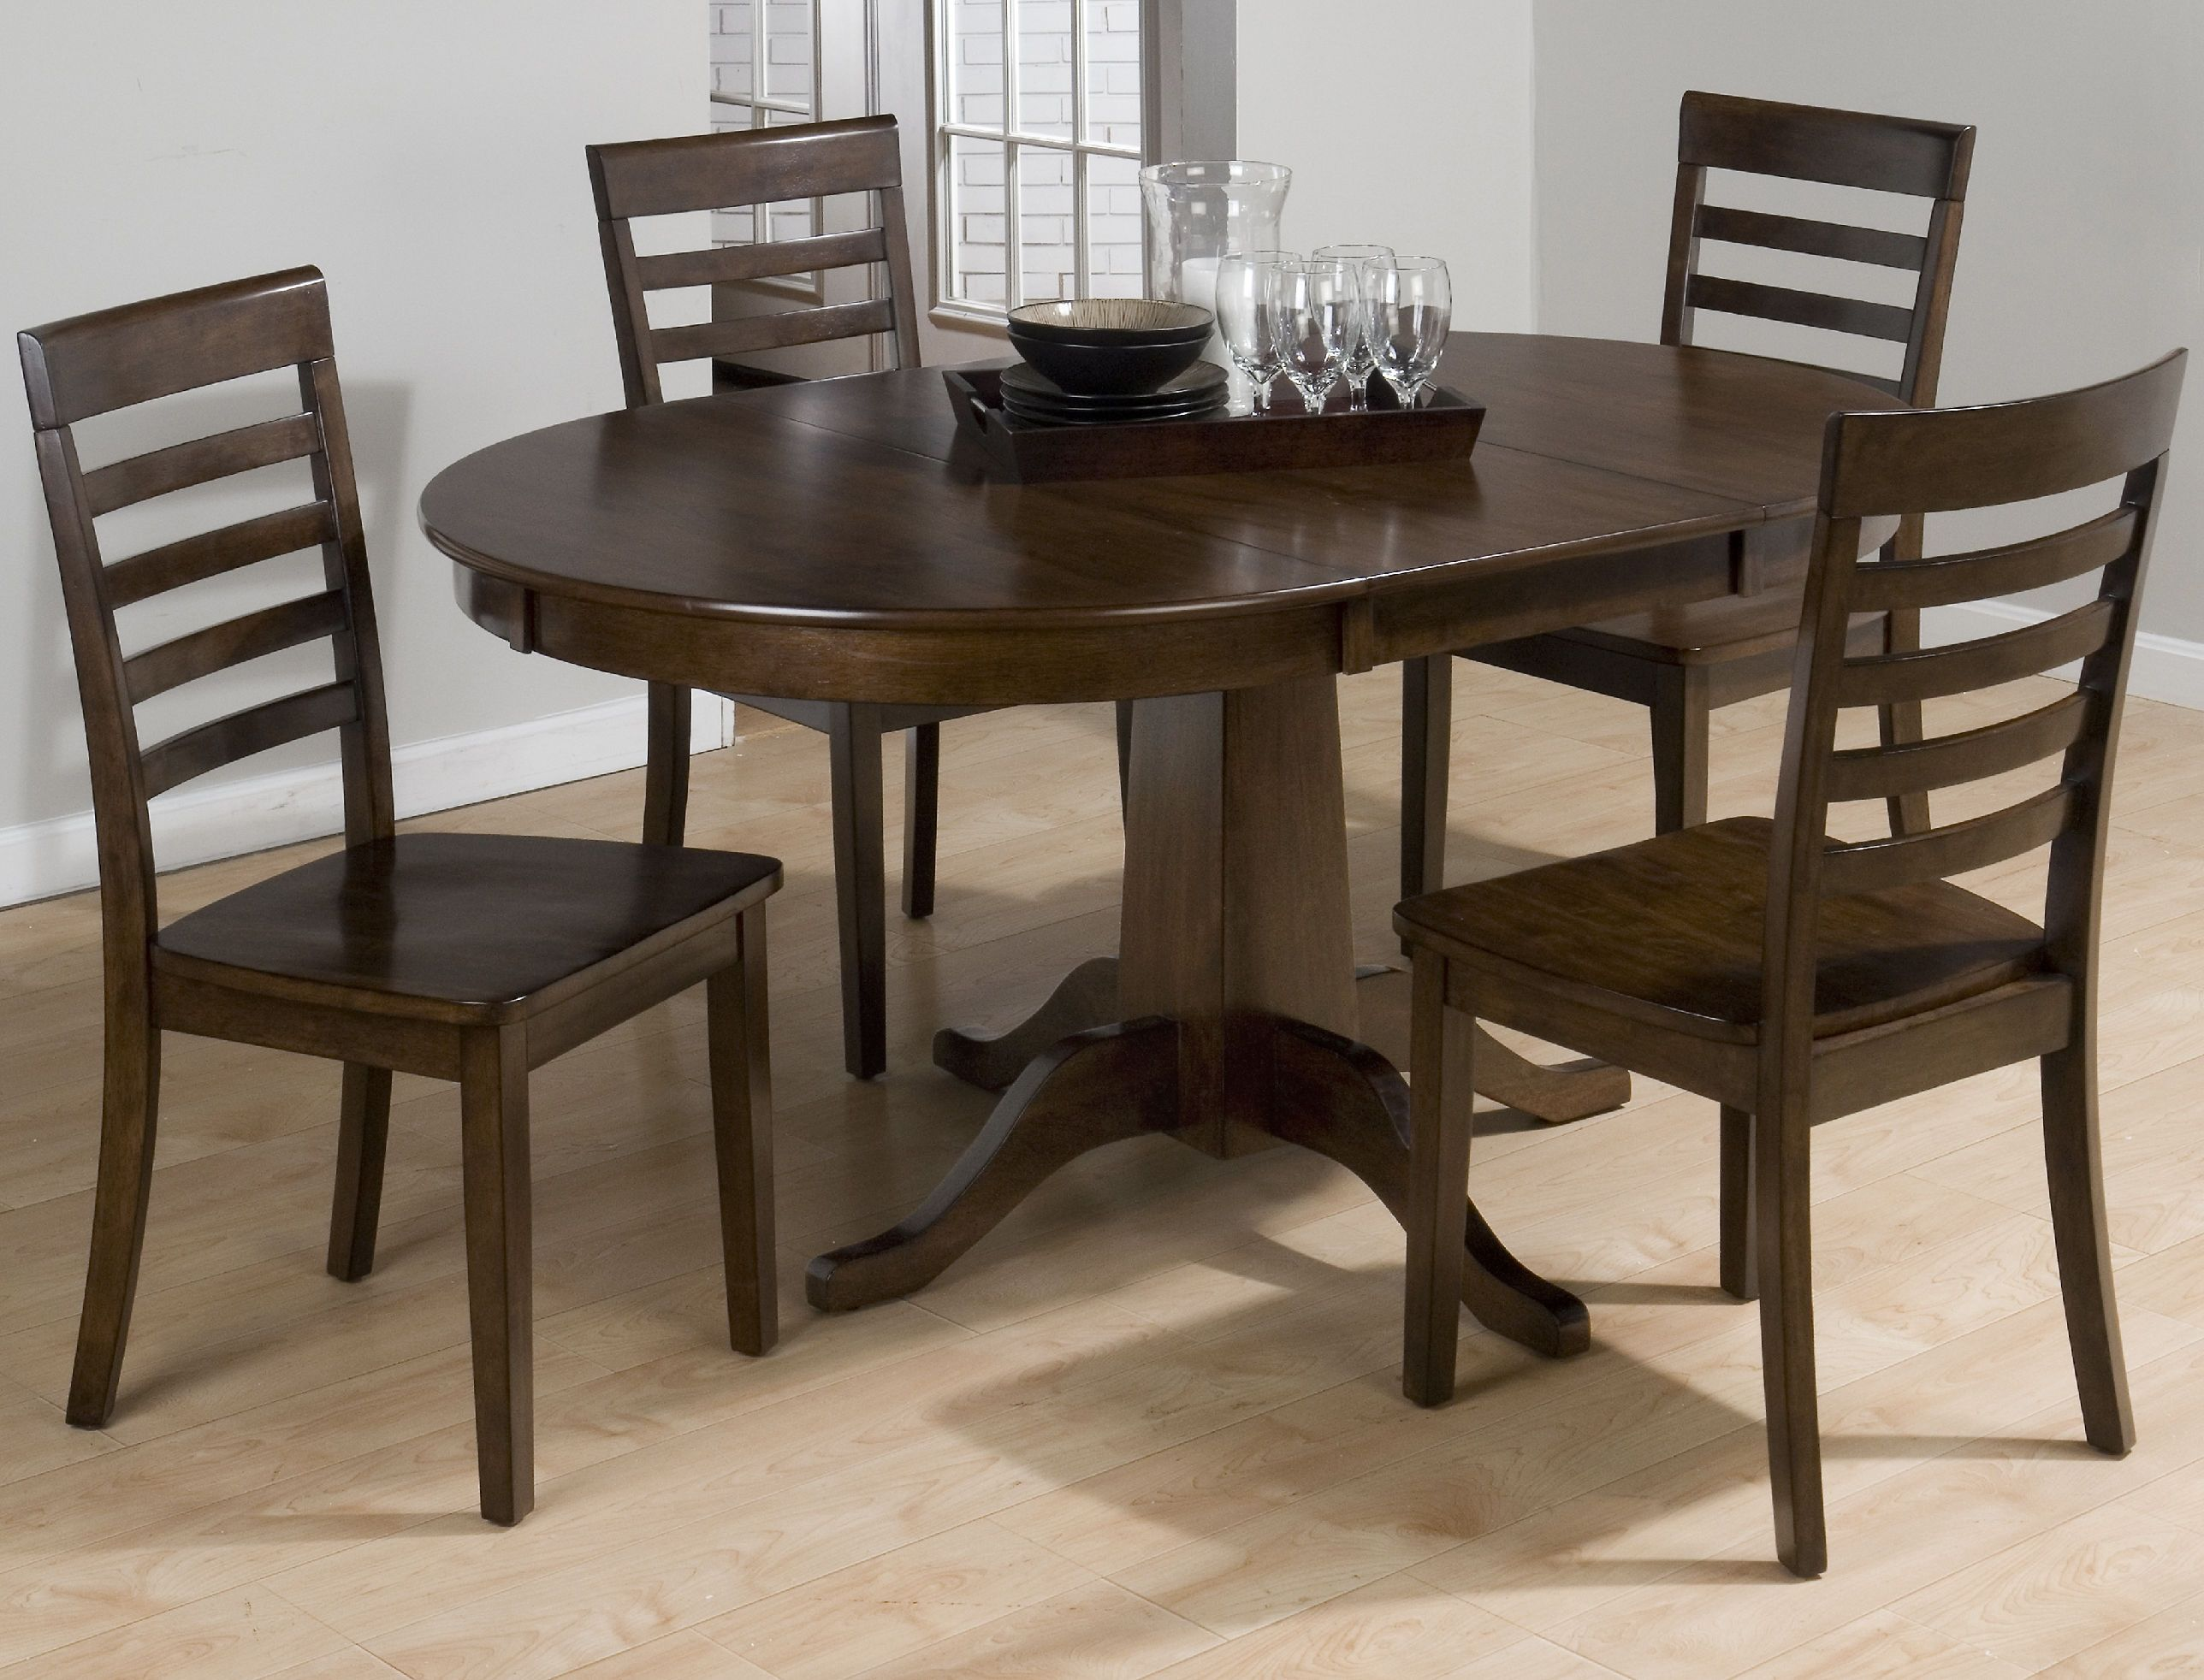 60 Round Kitchen Table Set | http://lachpage.com | Pinterest